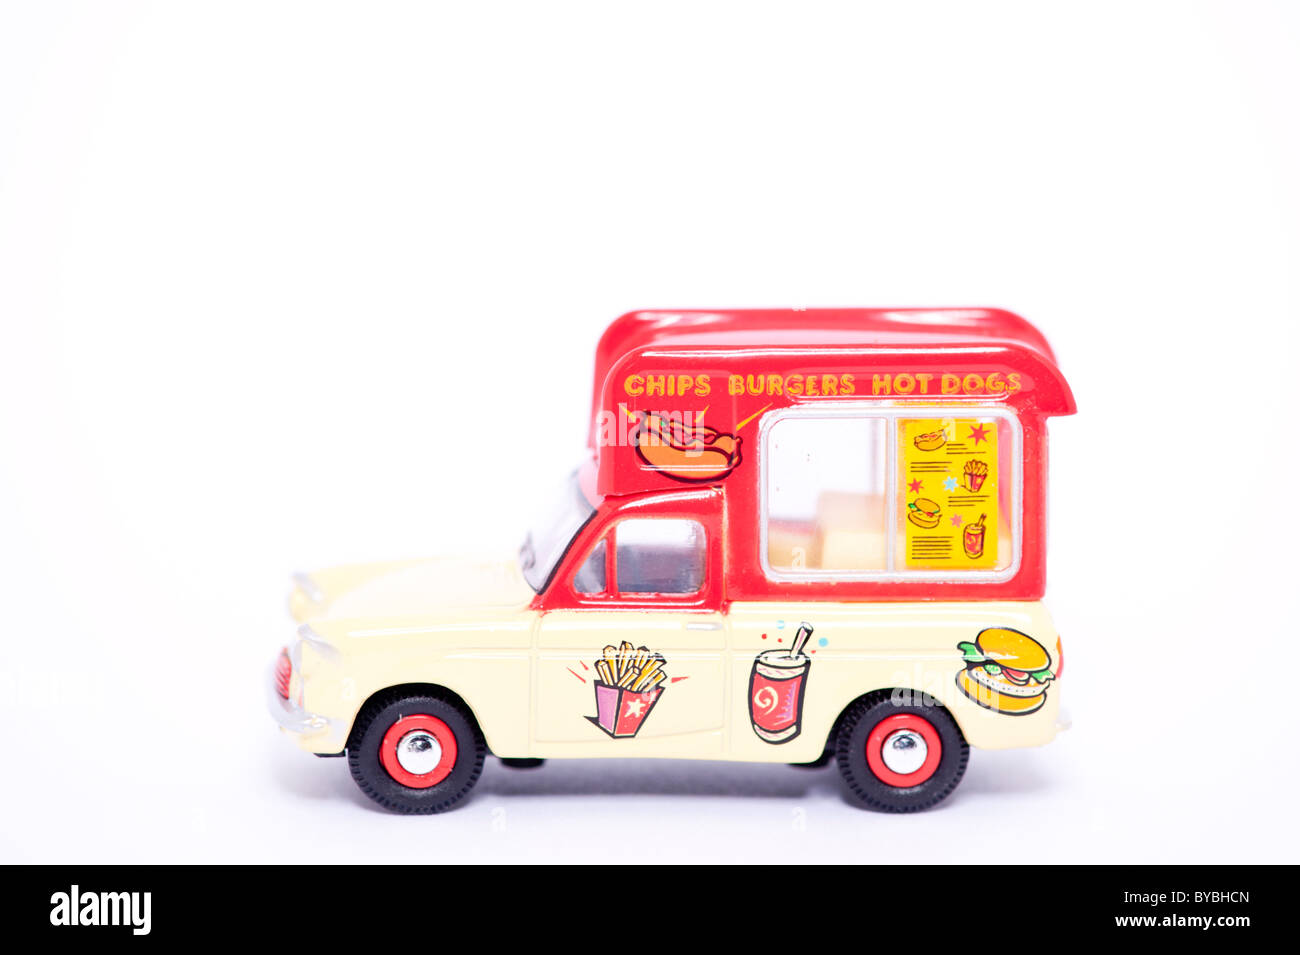 A toy model chips , burgers and hot dogs van on a white background - Stock Image